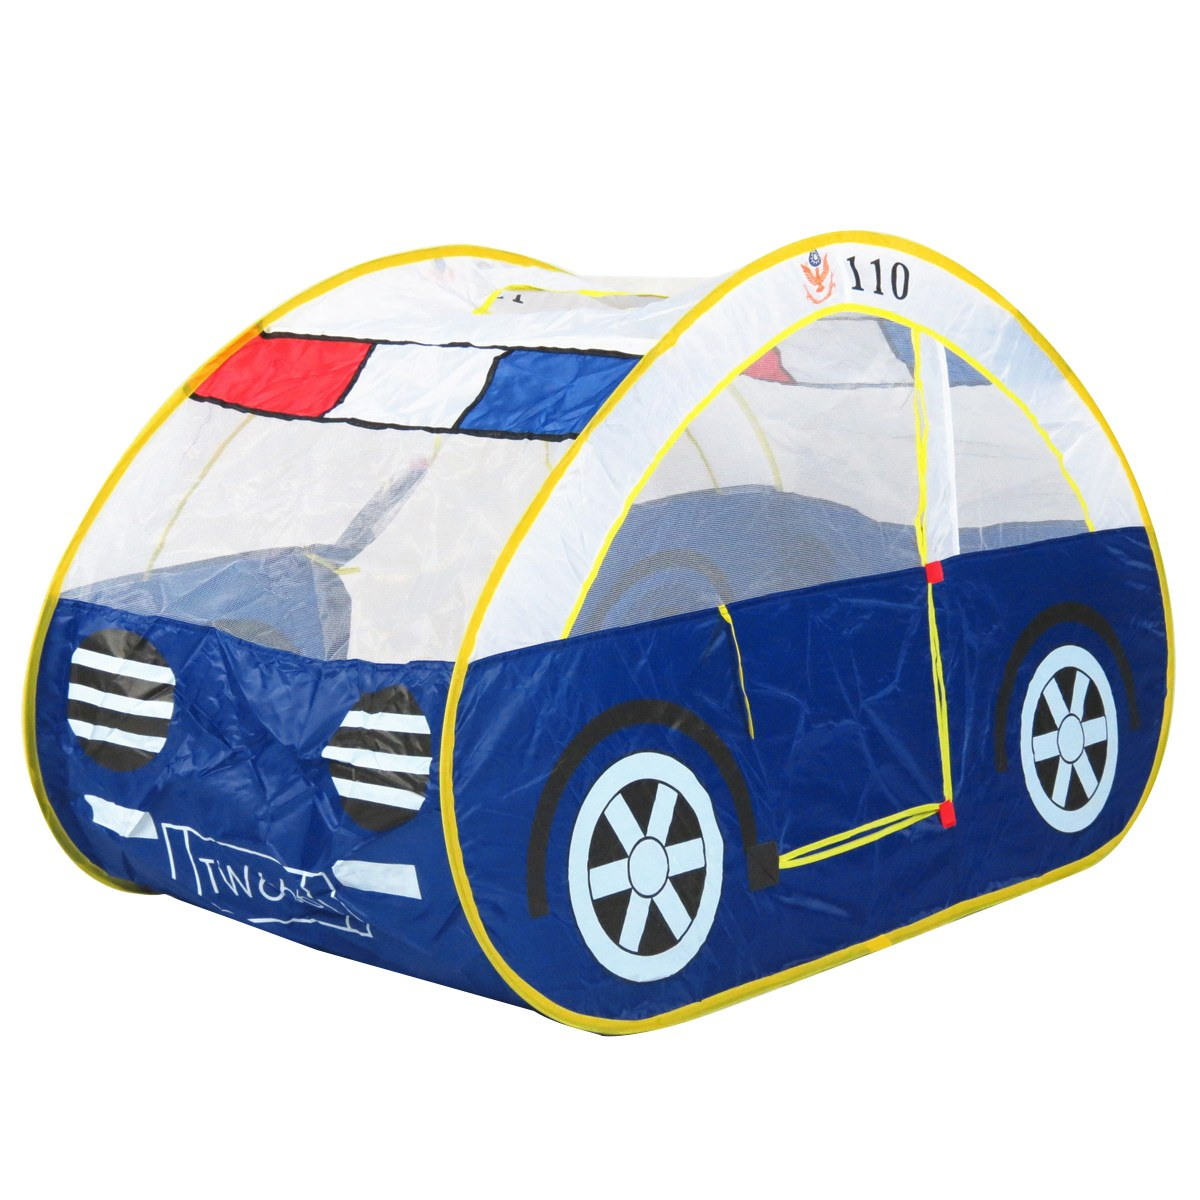 NEW-PORTABLE-FOLDING-POP-UP-PLAY-TENT-CHILDRENS-  sc 1 st  eBay & NEW PORTABLE FOLDING POP UP PLAY TENT CHILDRENS KIDS PLAYHOUSE ...